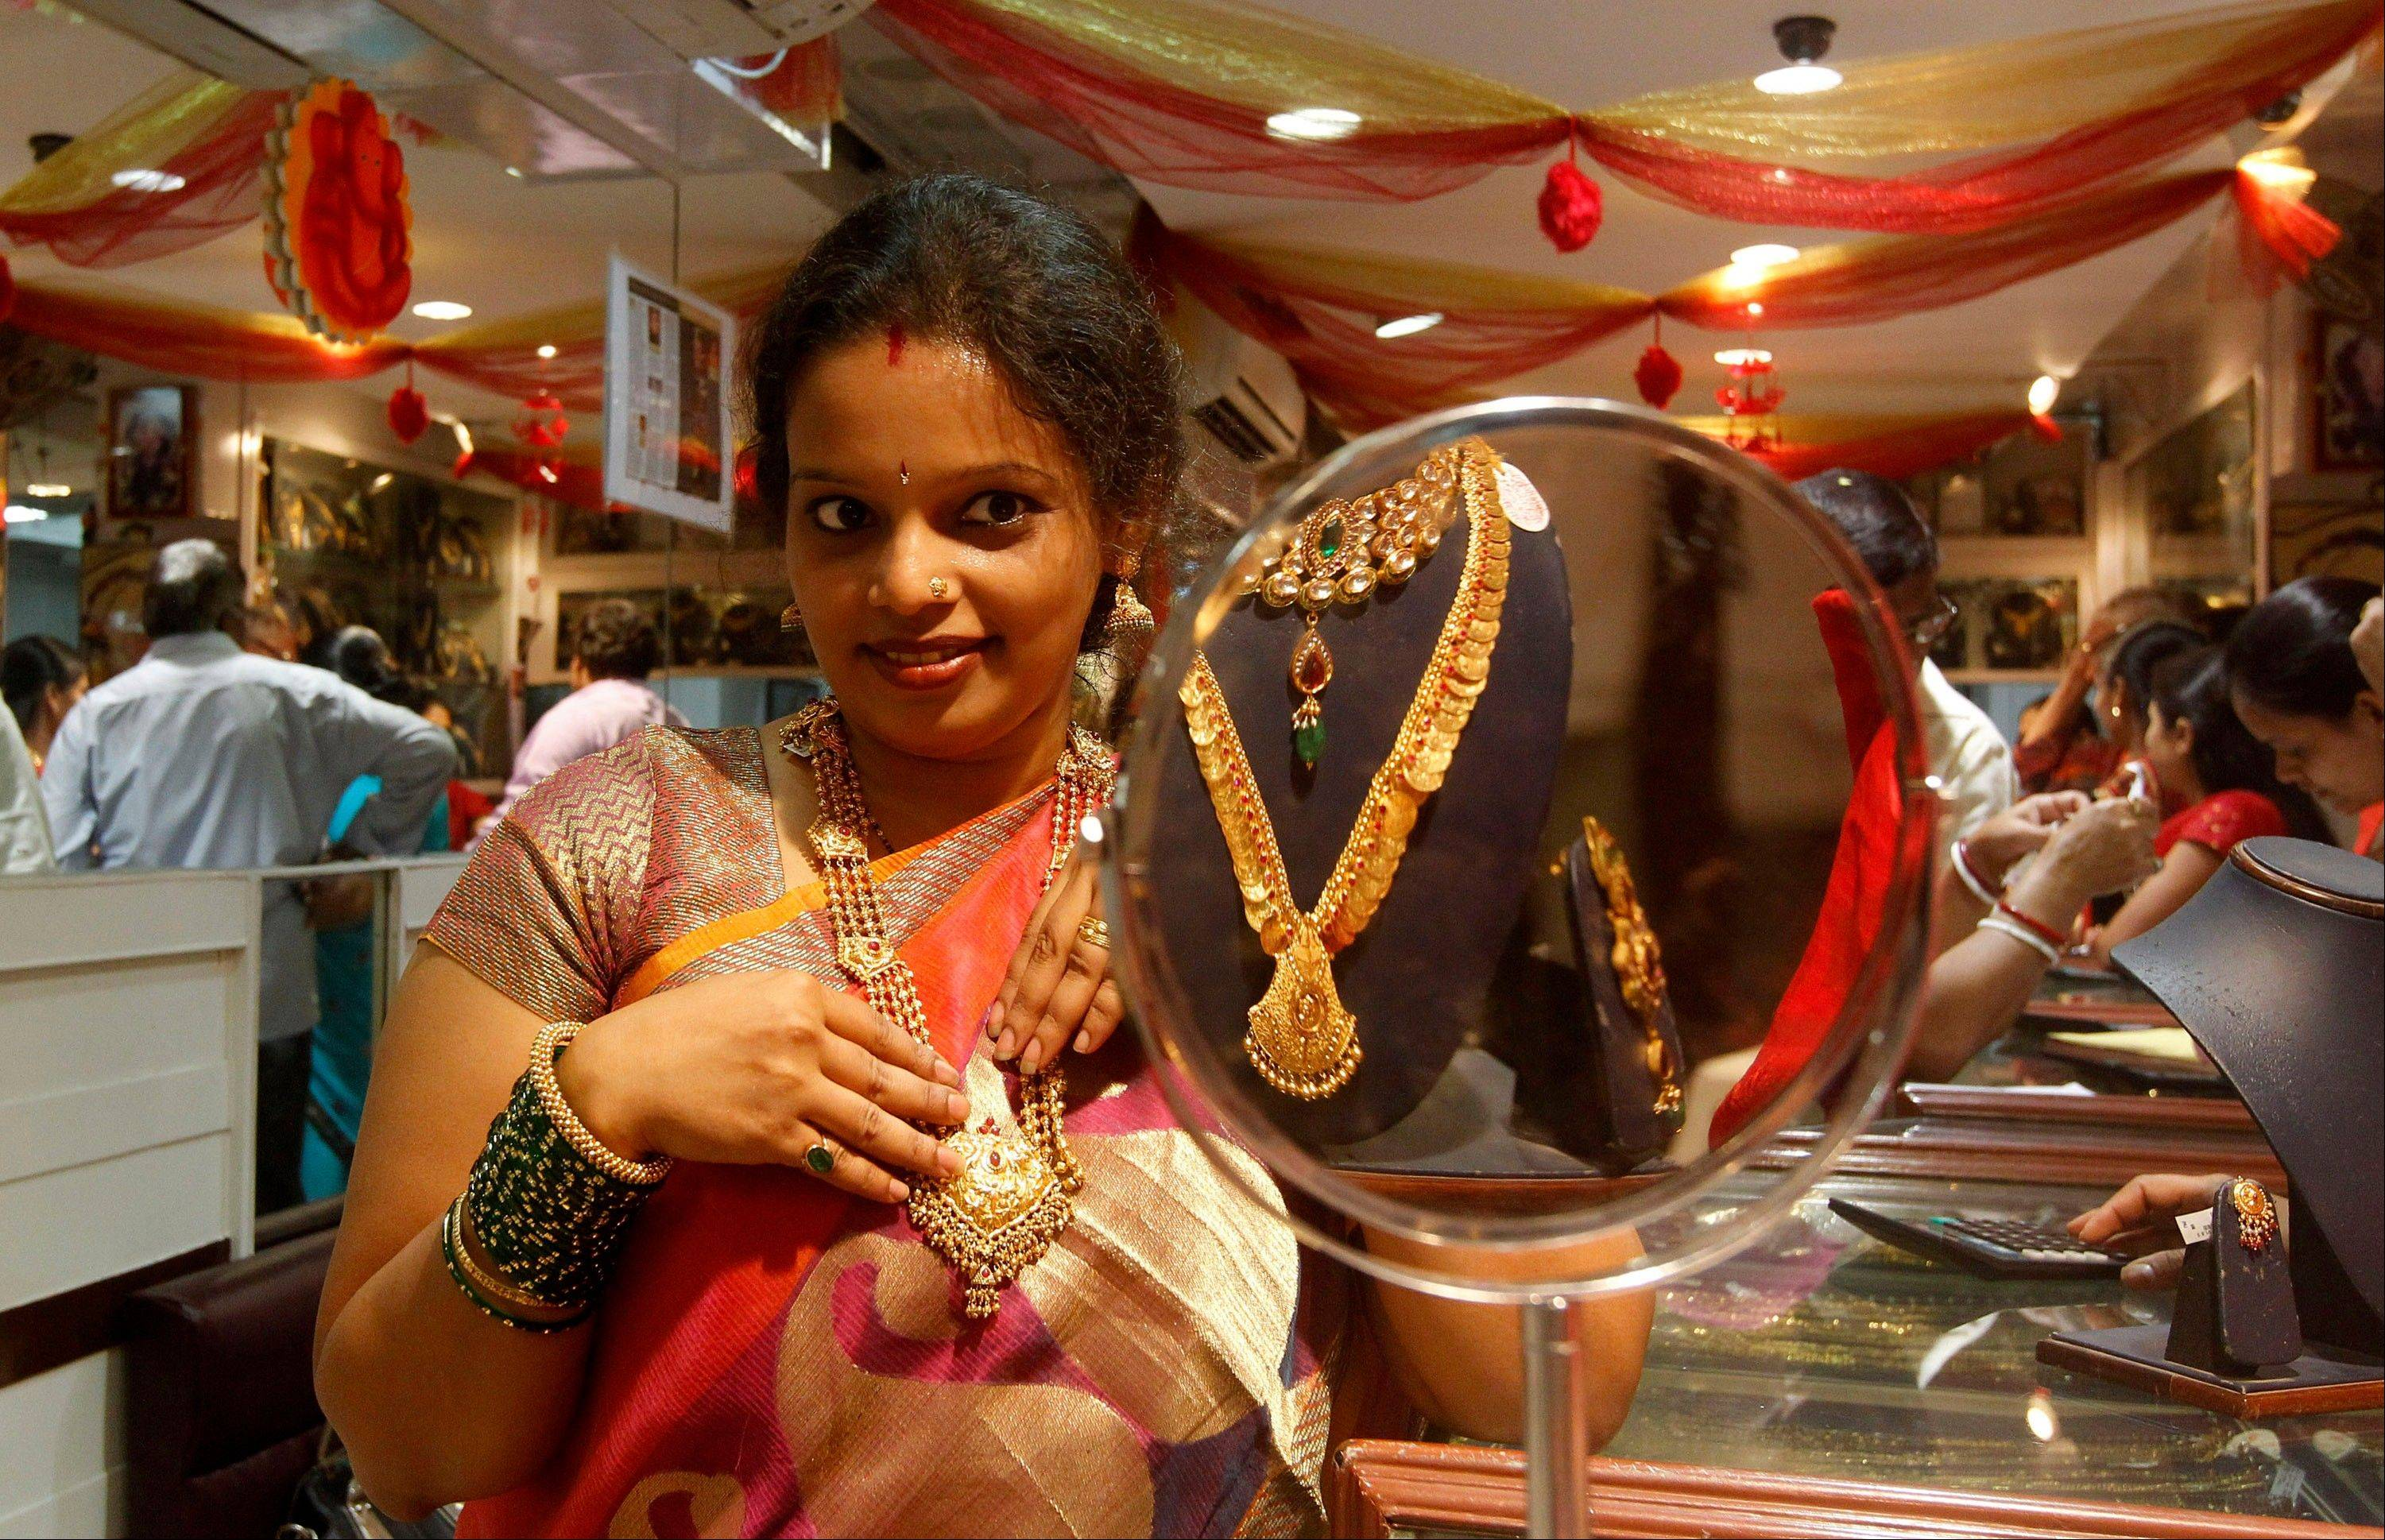 An Indian woman looks into a mirror as she tries out gold jewelry at a shop in Mumbai, India. The unquenchable appetite for gold coins, bars and jewelry has swelled India's trade deficit and weakened its currency, making crucial imports such as fuel more expensive.